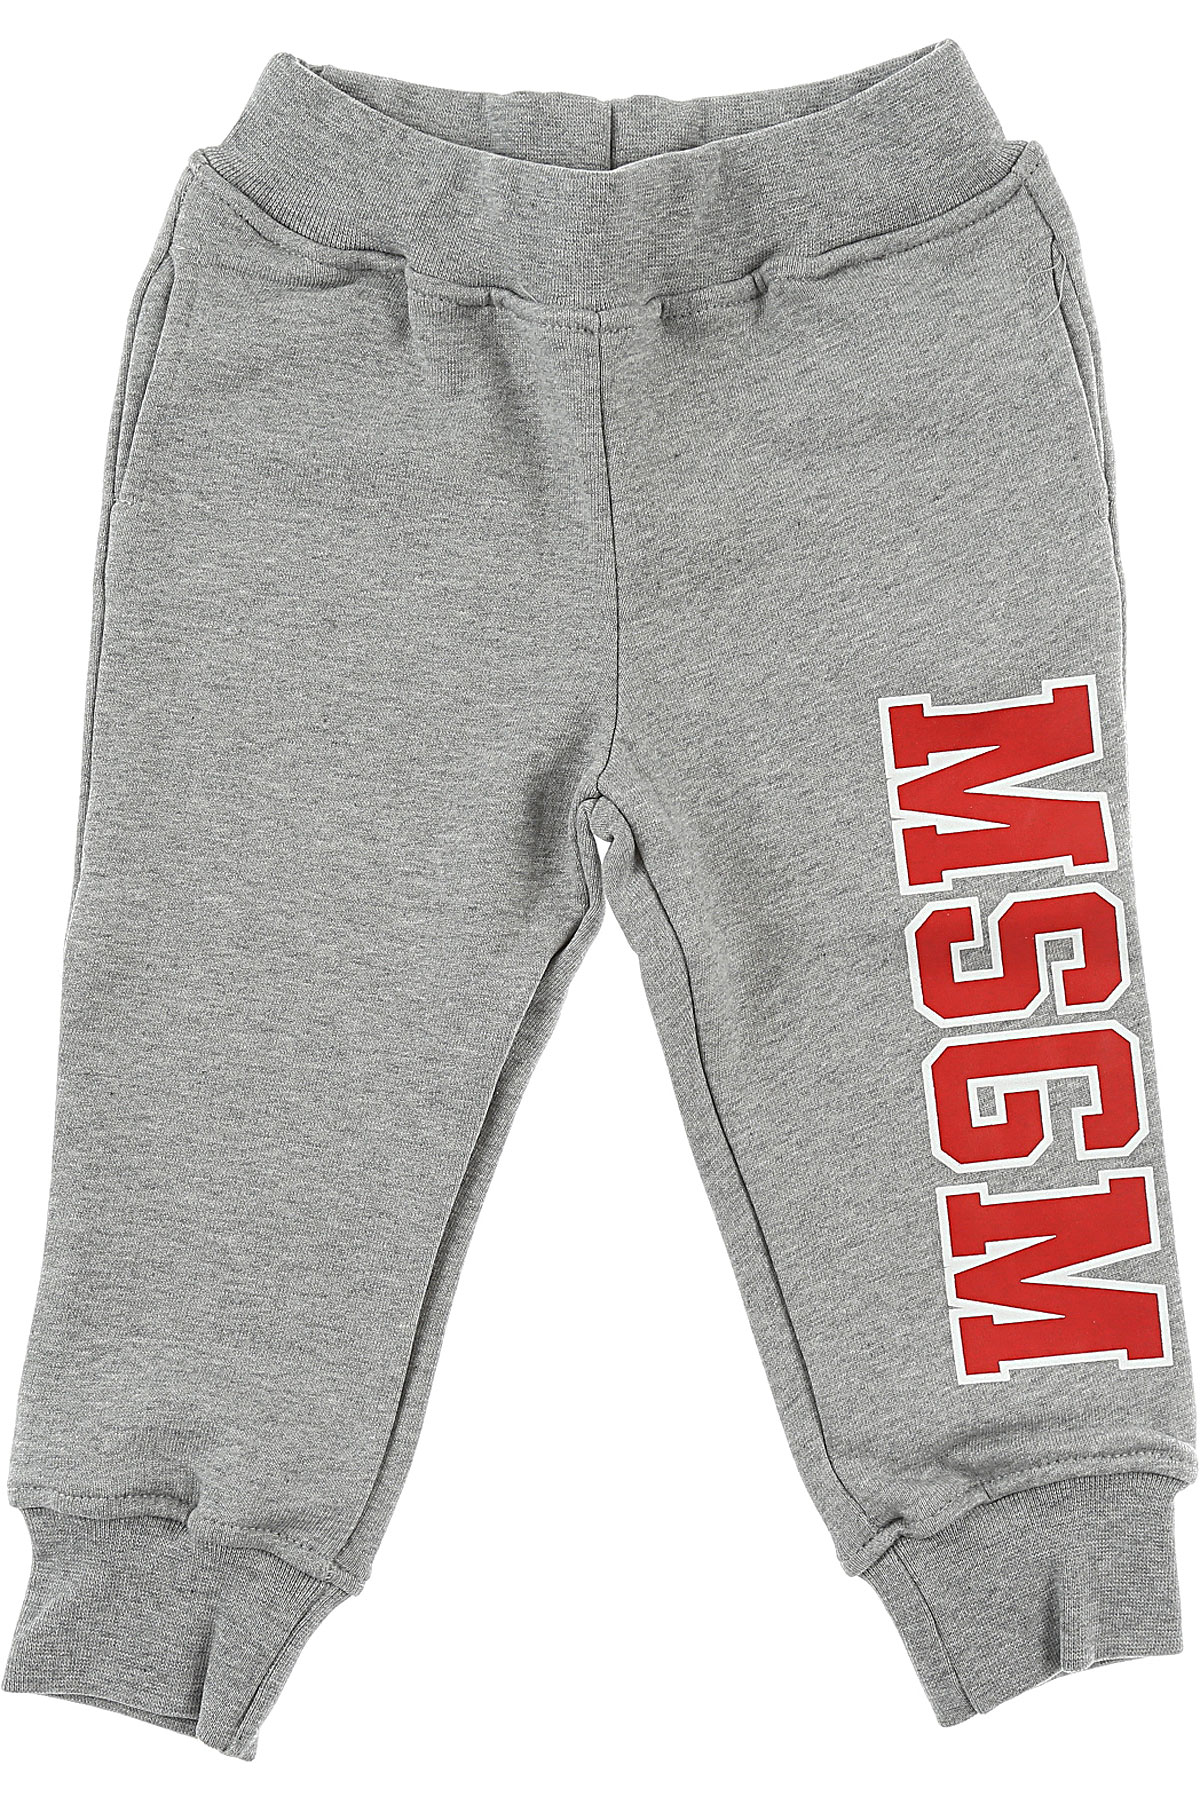 Image of MSGM Baby Sweatpants for Girls, Grey, Cotton, 2017, 18M 6M